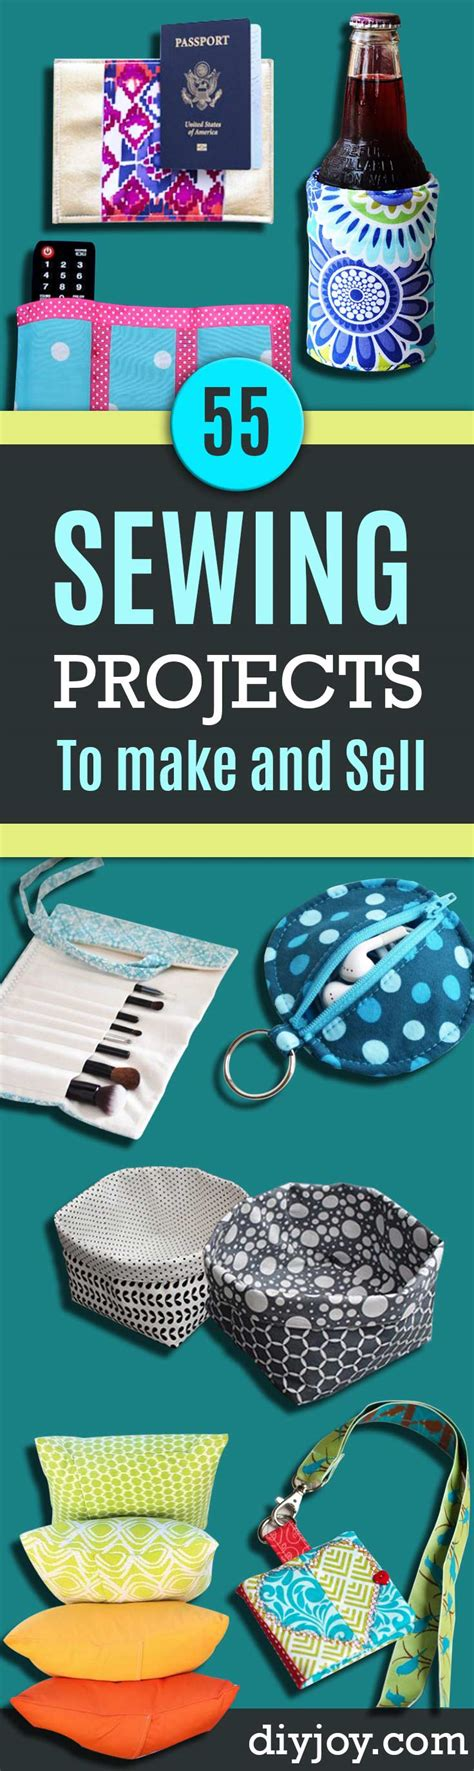 craft projects to make and sell 55 sewing projects to make and sell craft business